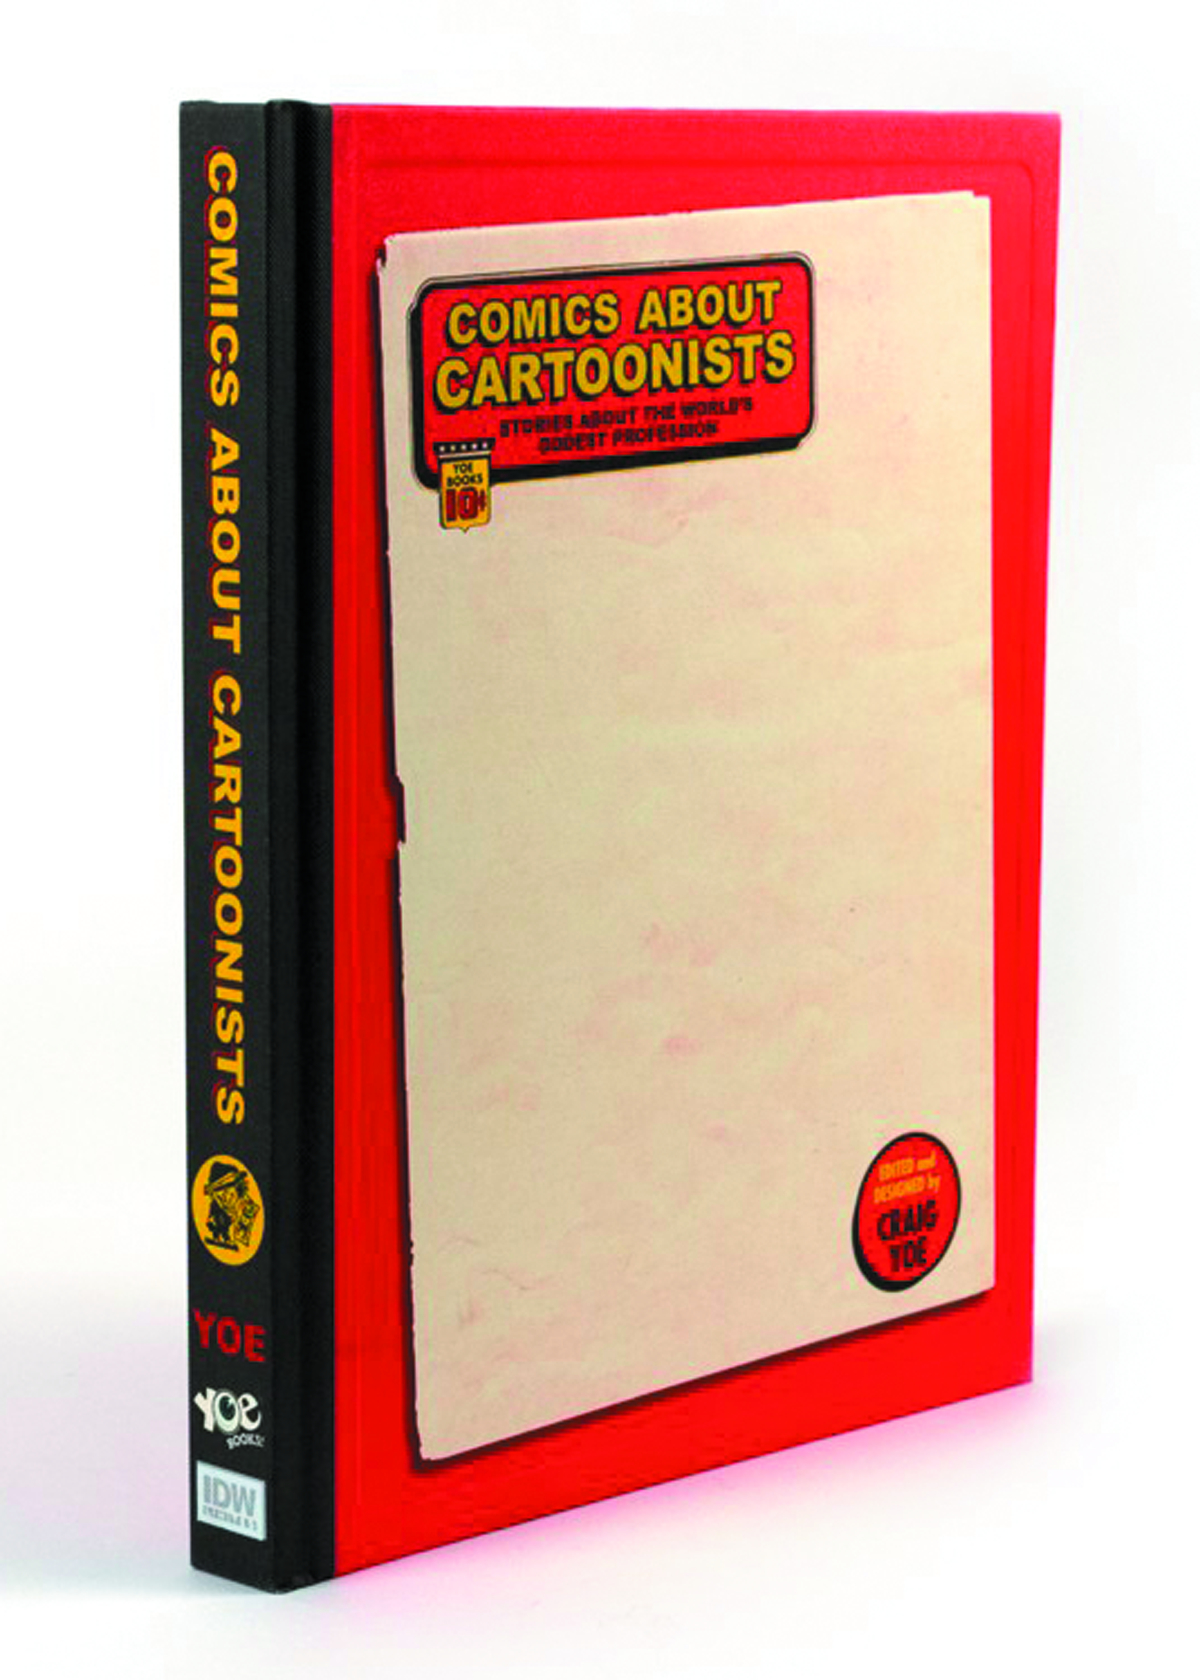 COMICS ABOUT CARTOONISTS HC LTD SKETCH ED